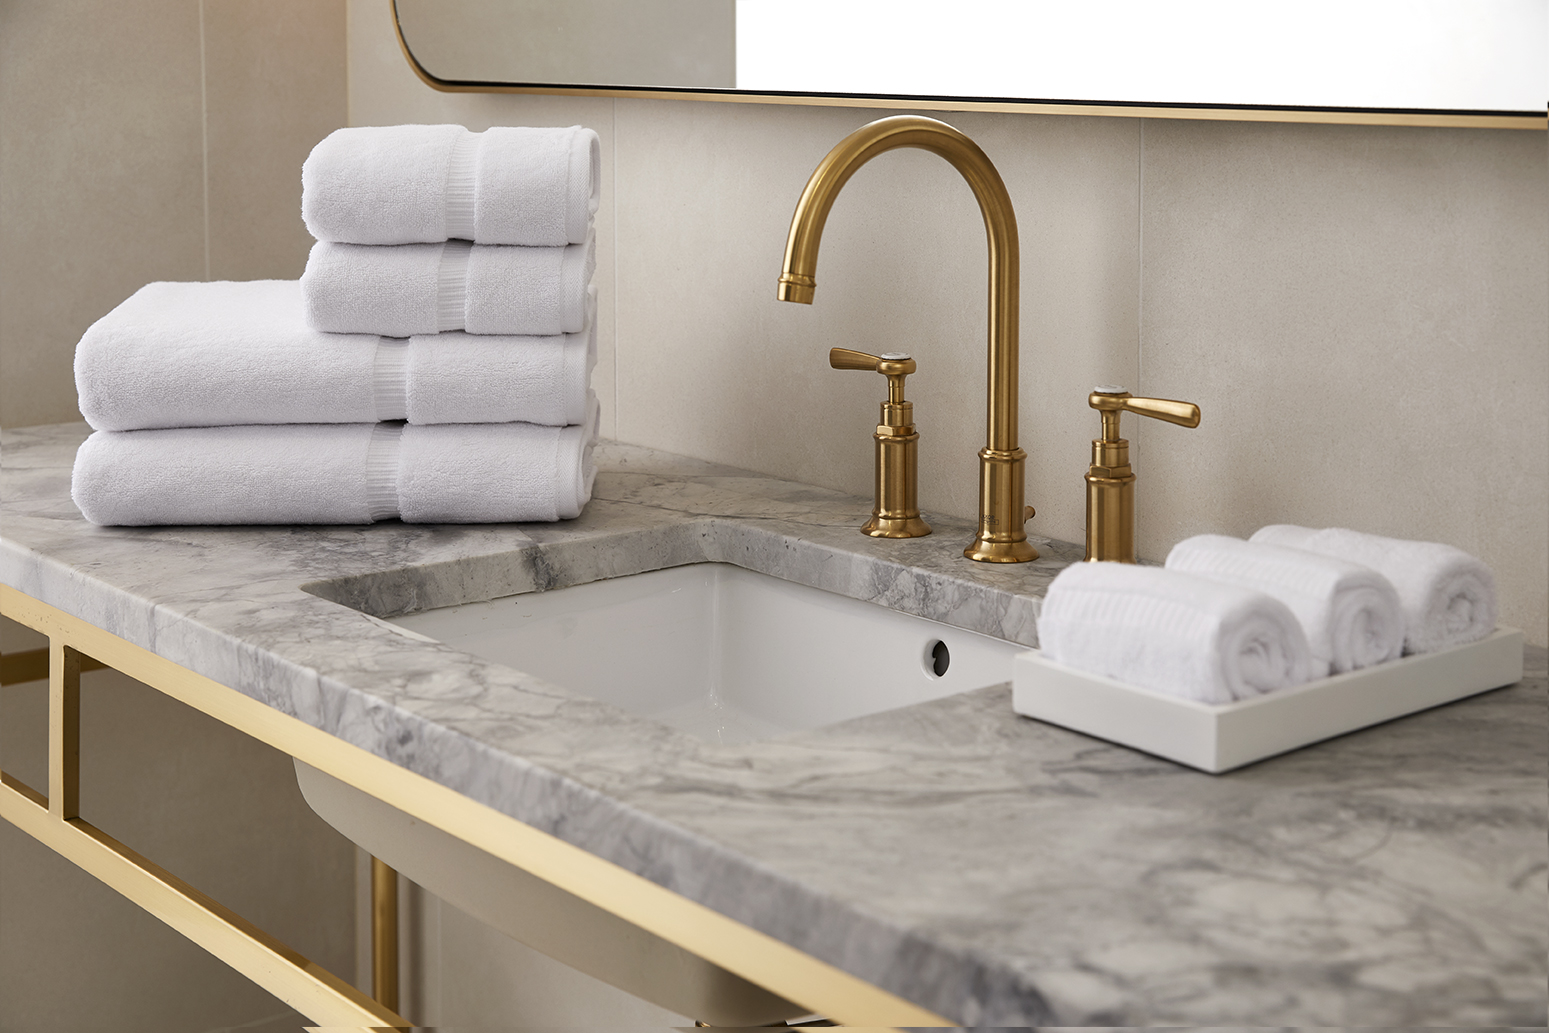 Revival_New_York_Luxury_Bath_Linens_Bowery_Collection_Products_Hospitality_Hotels